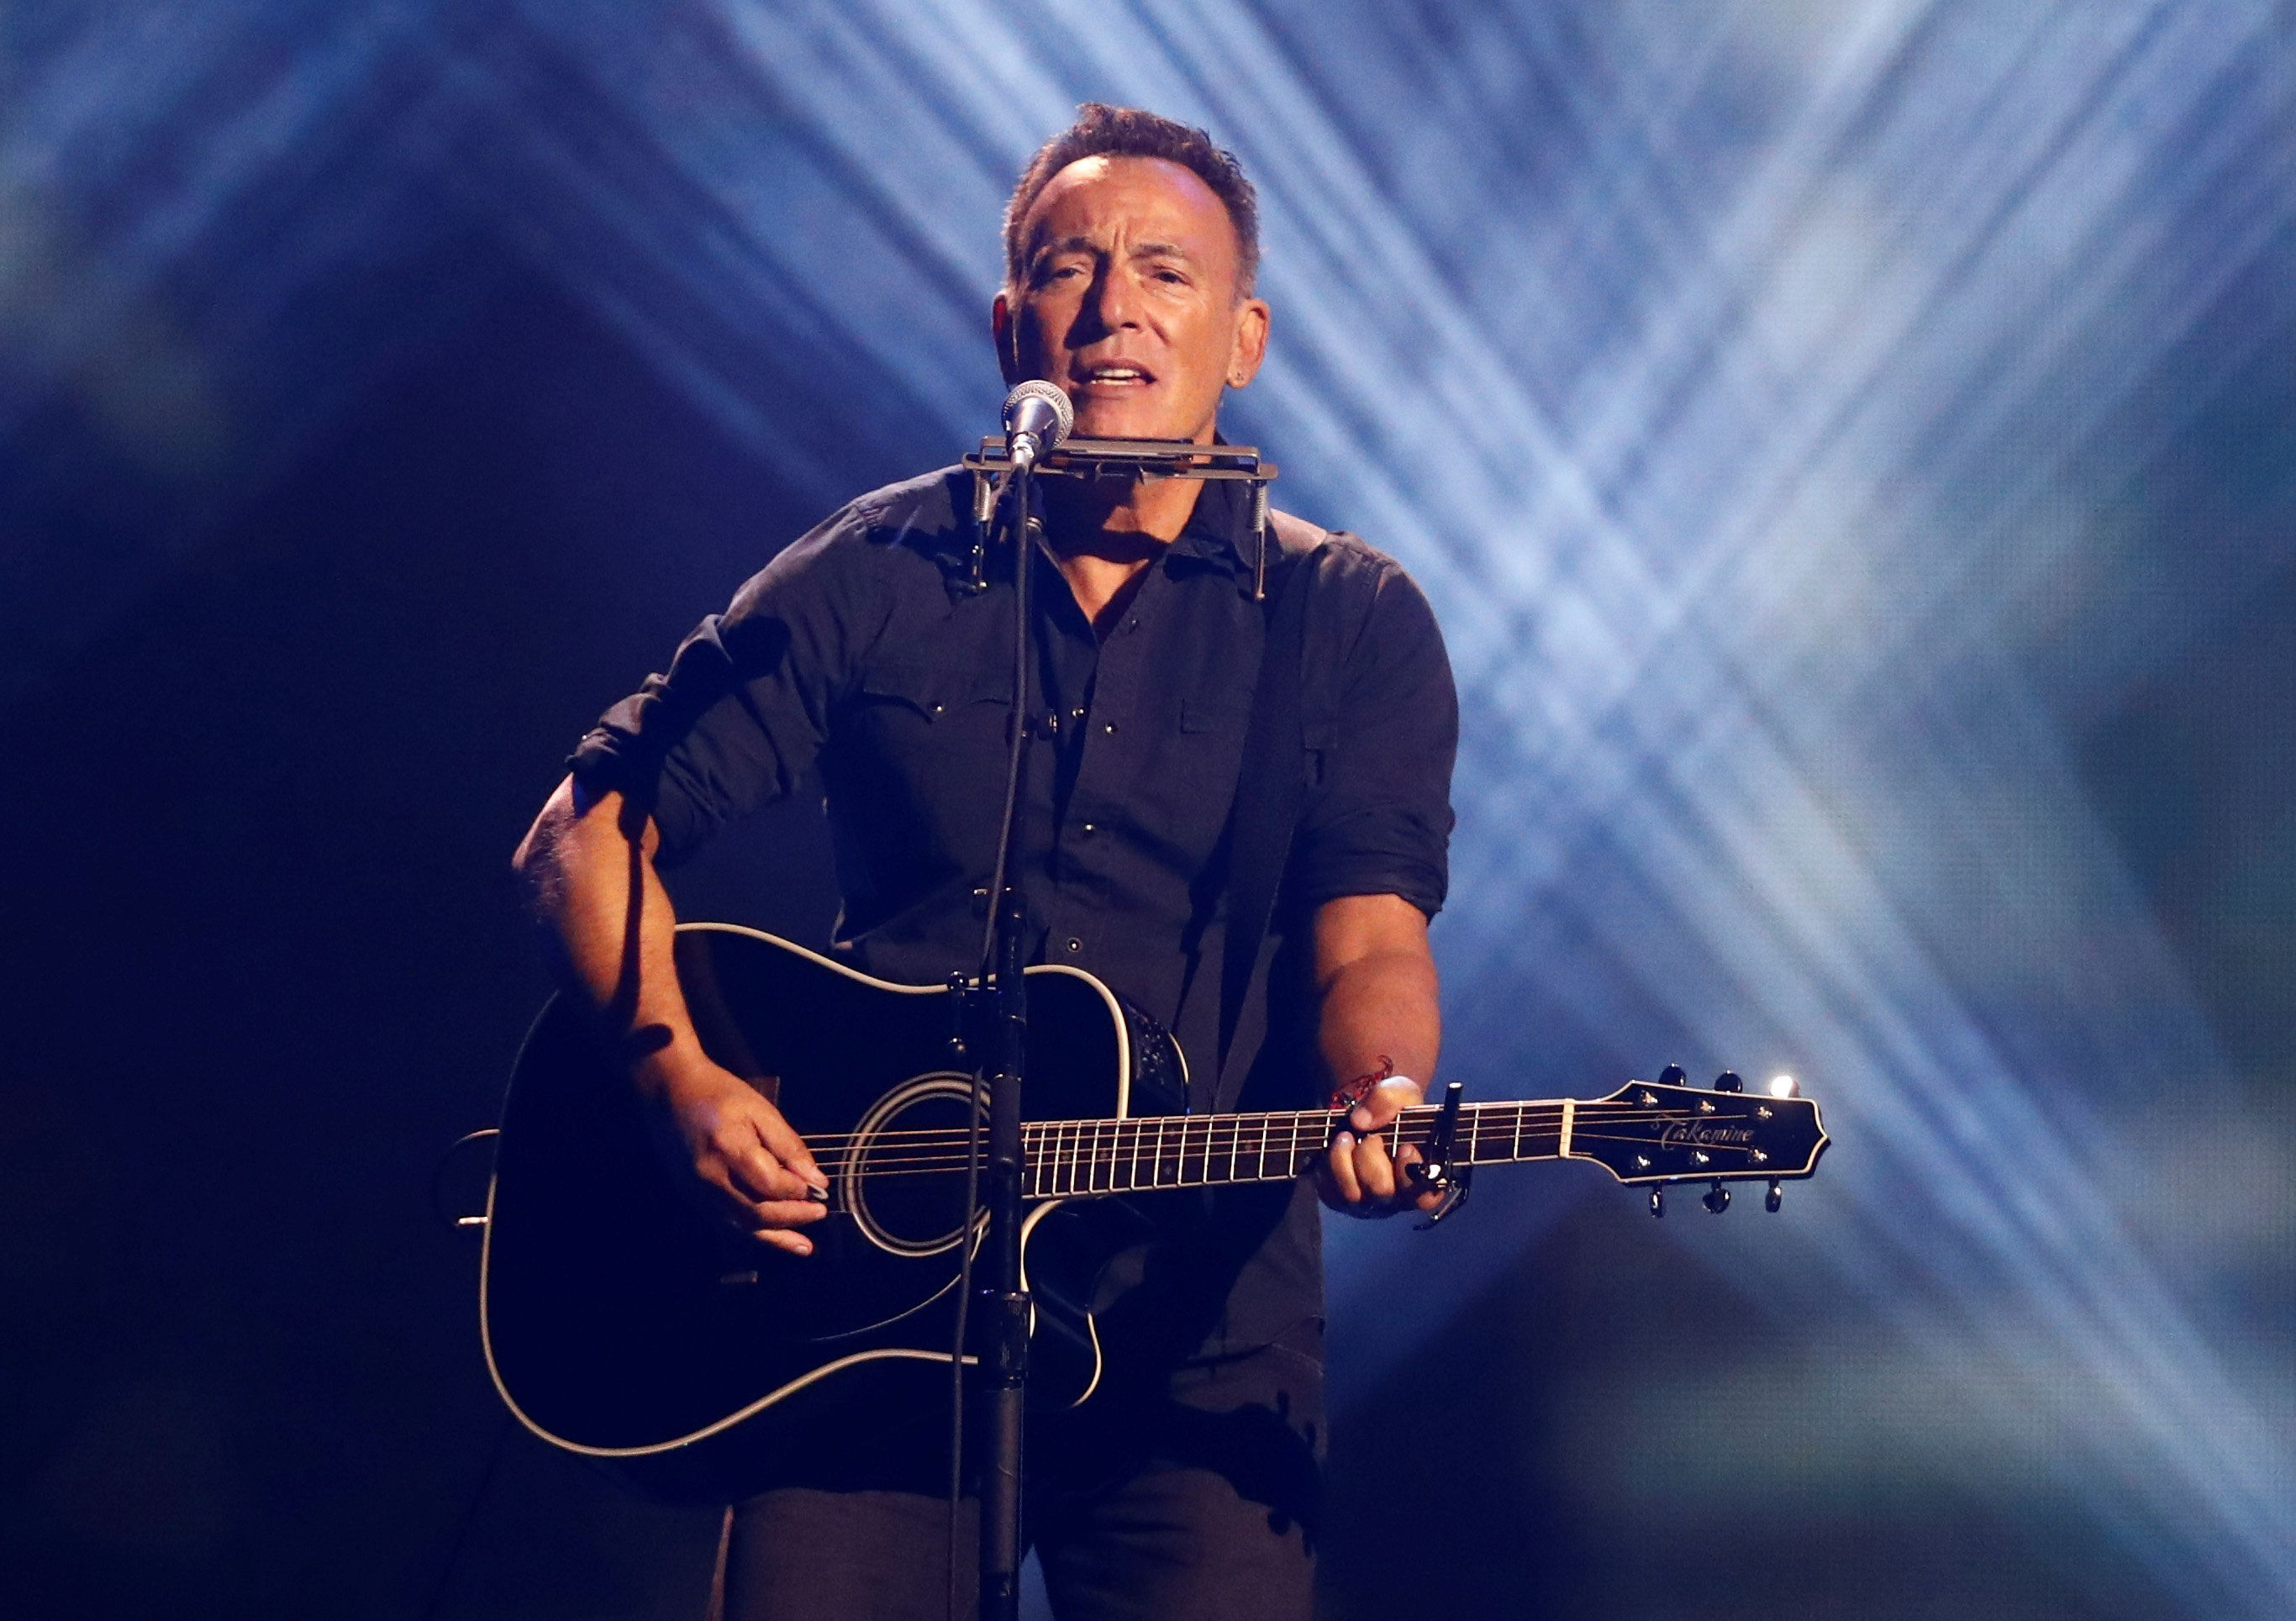 Singer Bruce Springsteen performs during the closing ceremony for the Invictus Games in Toronto, Ontario, Canada September 30, 2017.    REUTERS/Mark Blinch